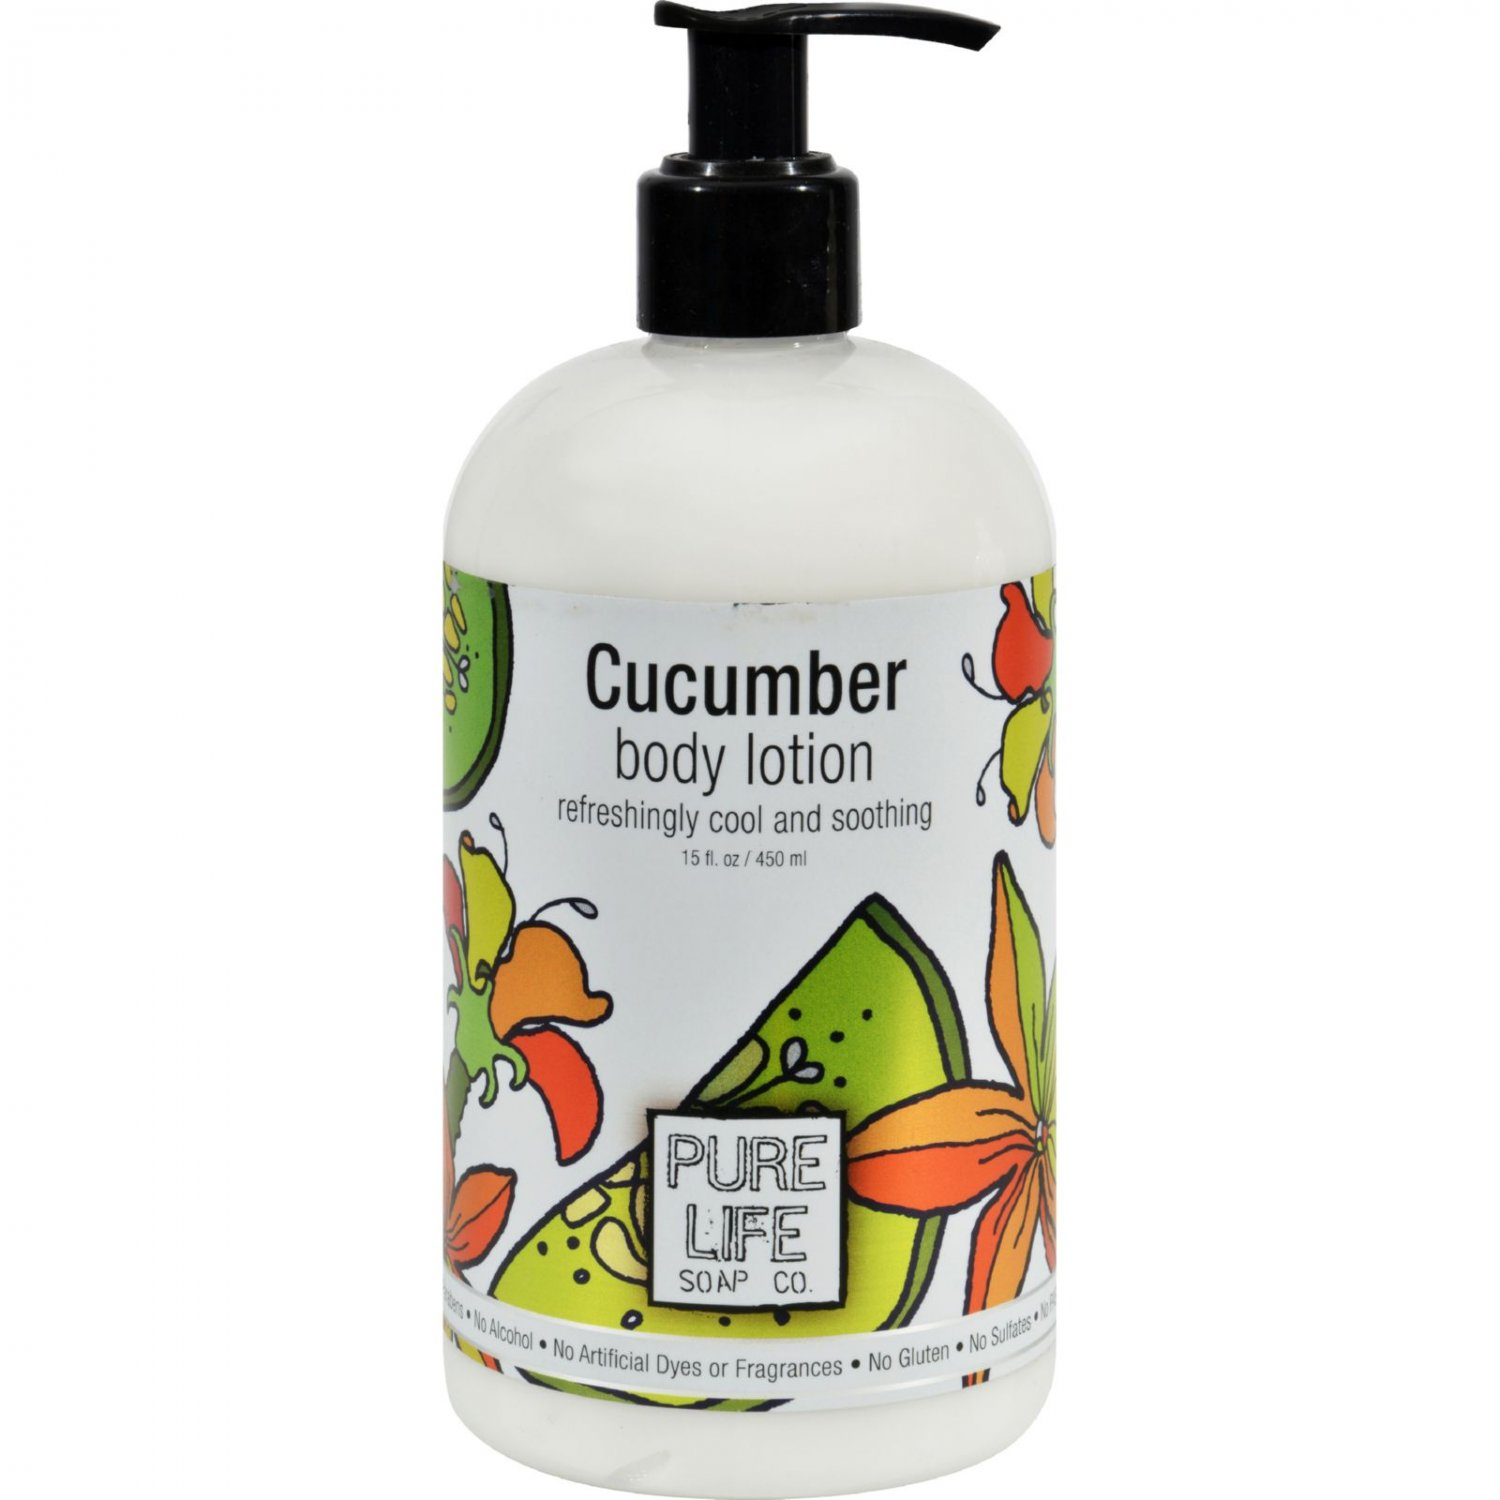 Pure Life Body Lotion Cucumber - 14.9 fl oz